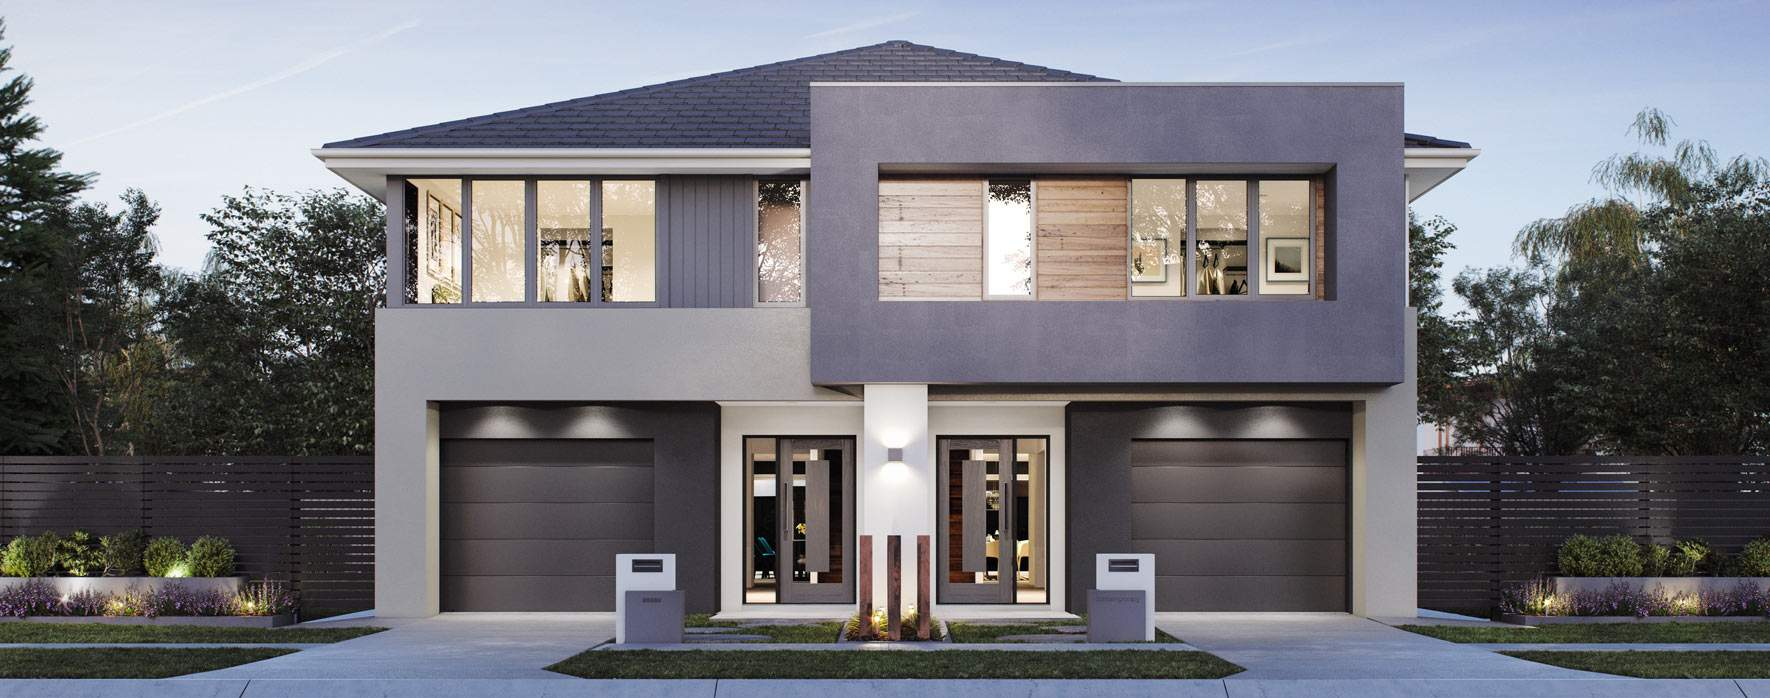 Essex Duplex Home Design With 8 Bedrooms Mojo Homes